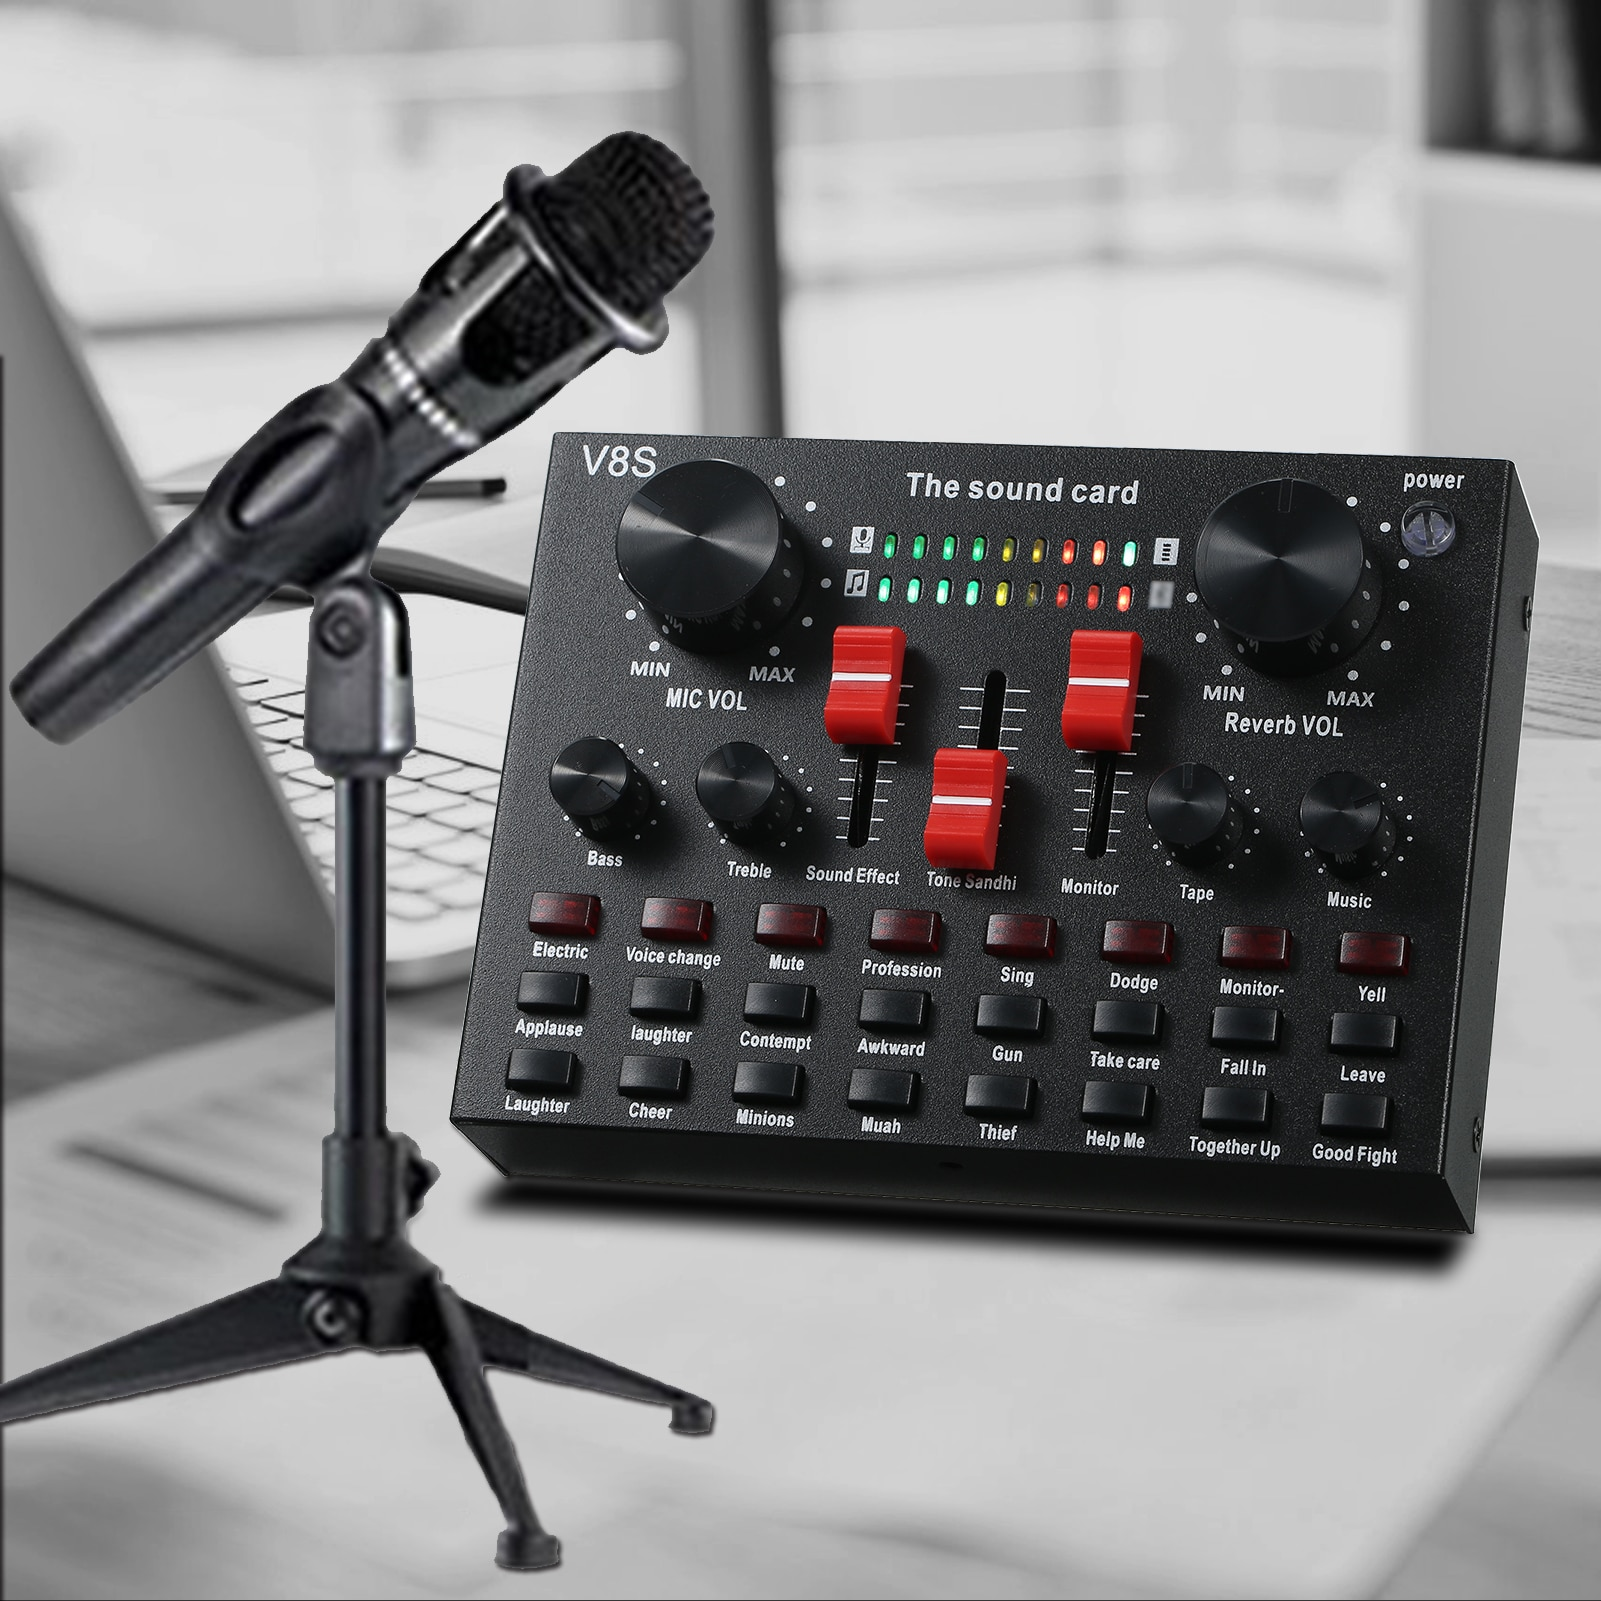 V8S Live Sound Card Microphone Set 8 Modes Audio Recording Live Streaming Equipments